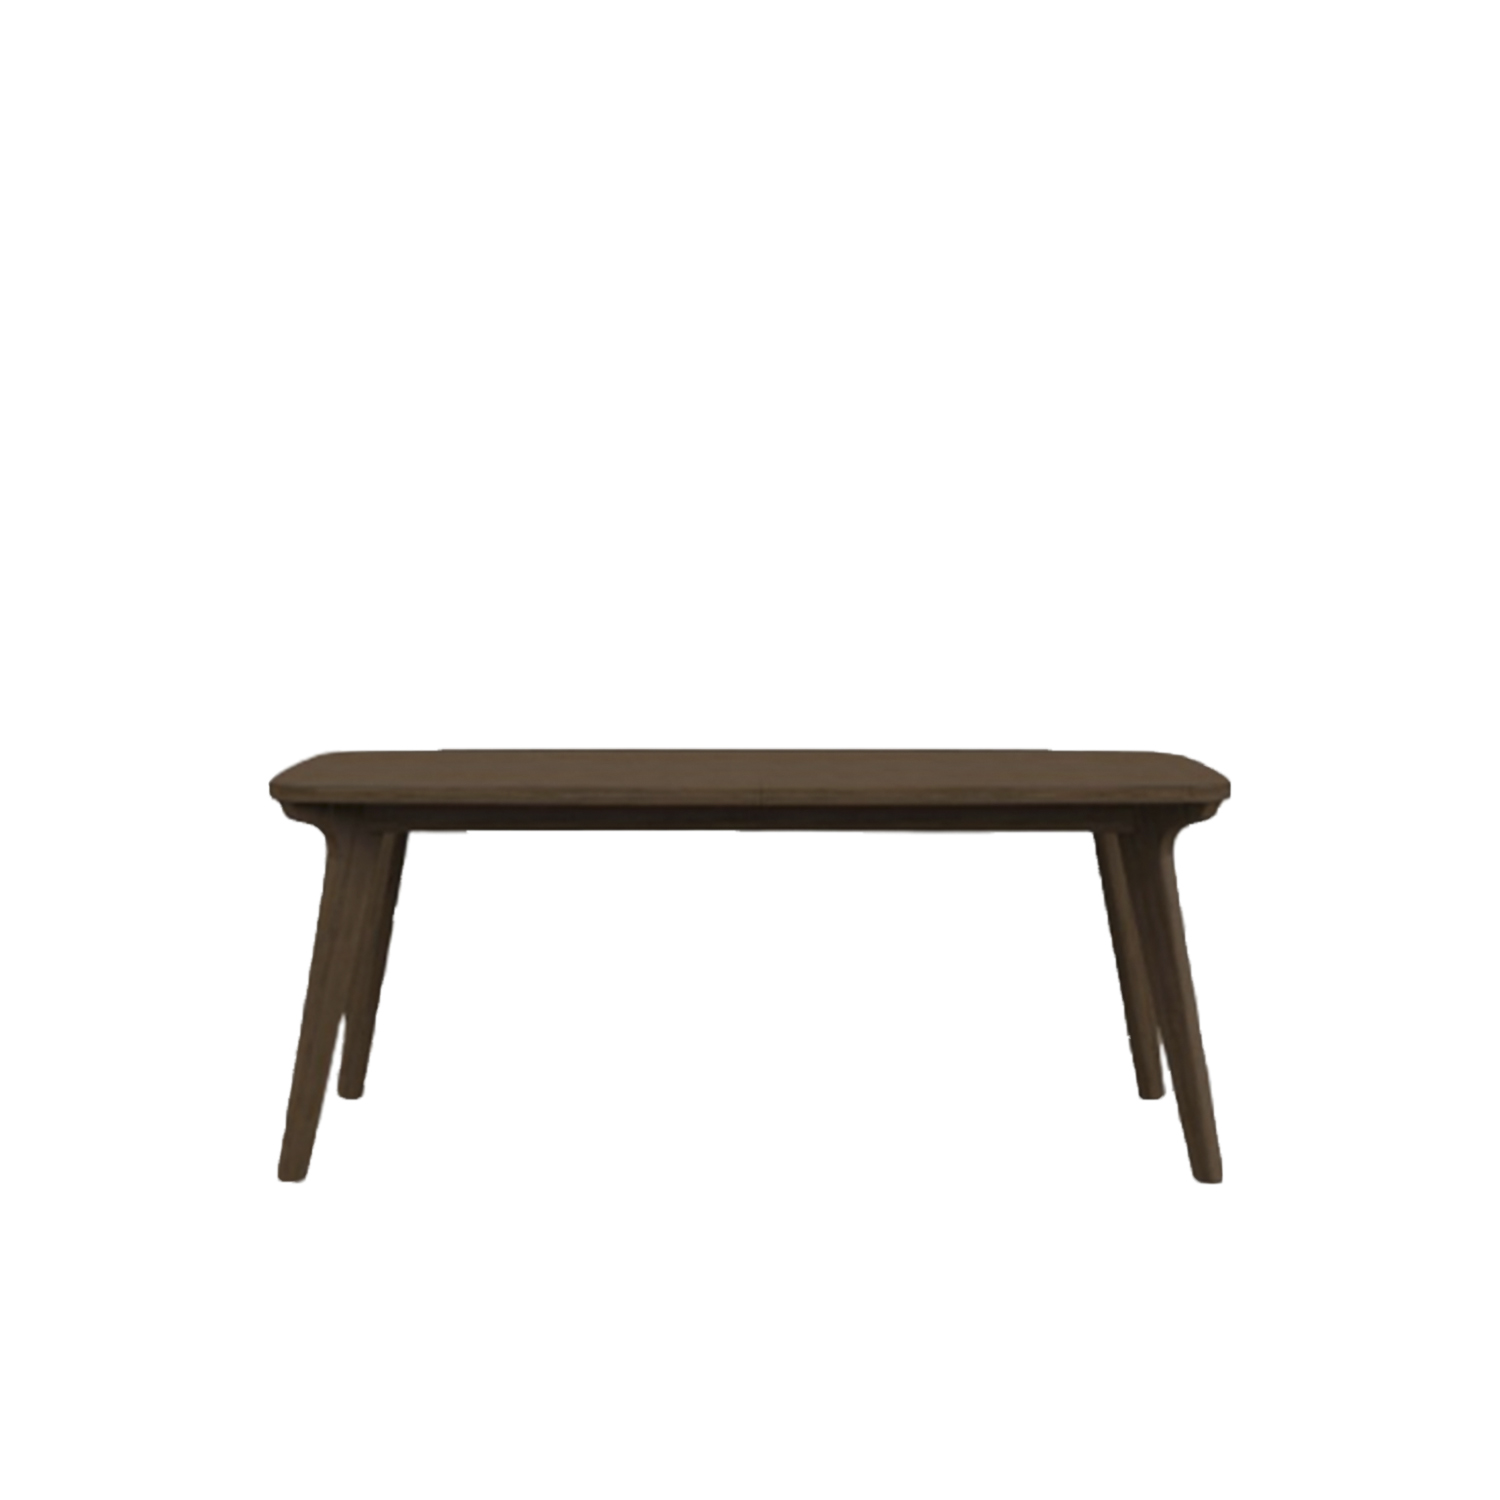 Brick 234 Table - Brick tables with natural hand carved barked Wrightia trunk sections, storage units in natural or lacquered American walnut, chairs with seat and back handwoven with gray rawhide, armchairs, sofas, beds and ottomans dressed with different colours and fabrics form this versatile collection. A young, classical and at the same time contemporary collection, a timeless collection.   Matter of Stuff